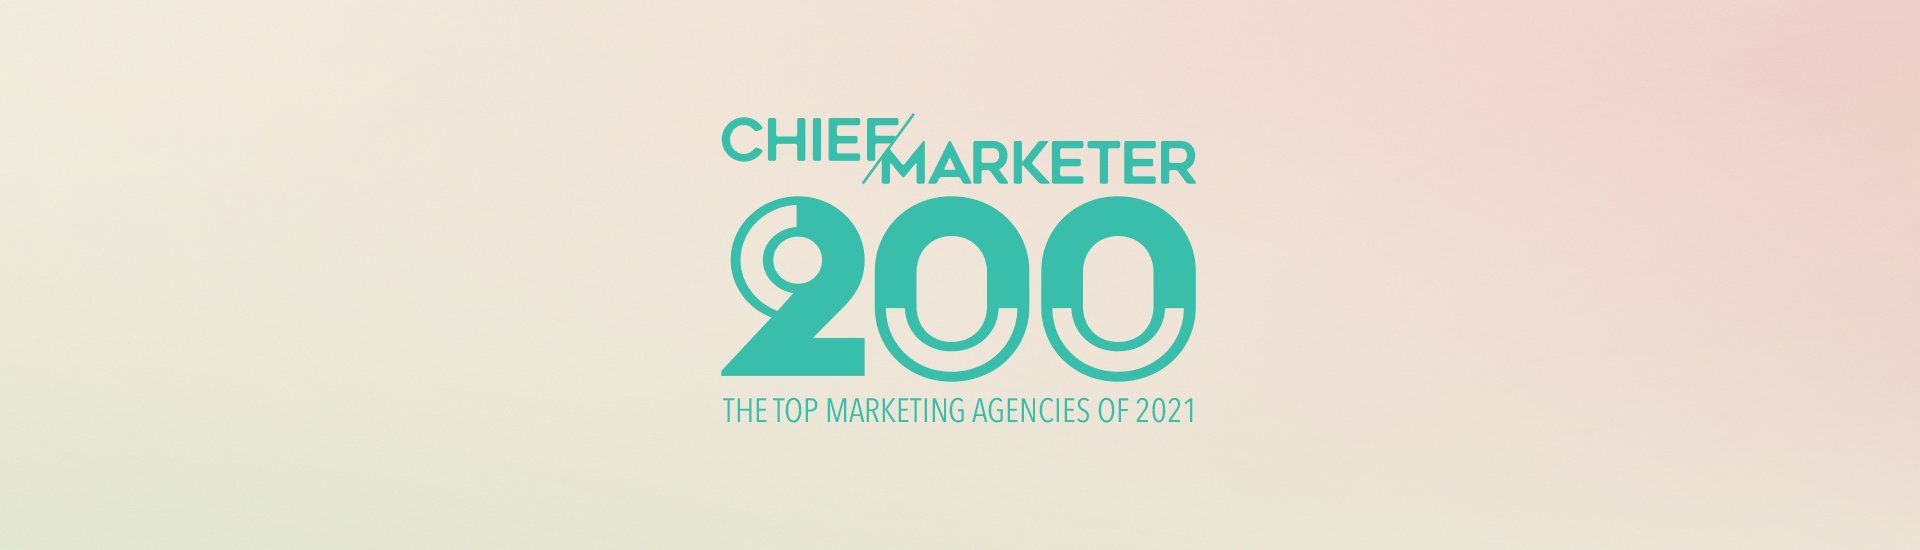 Chief Marketer Names Vye a Top Agency in 2021